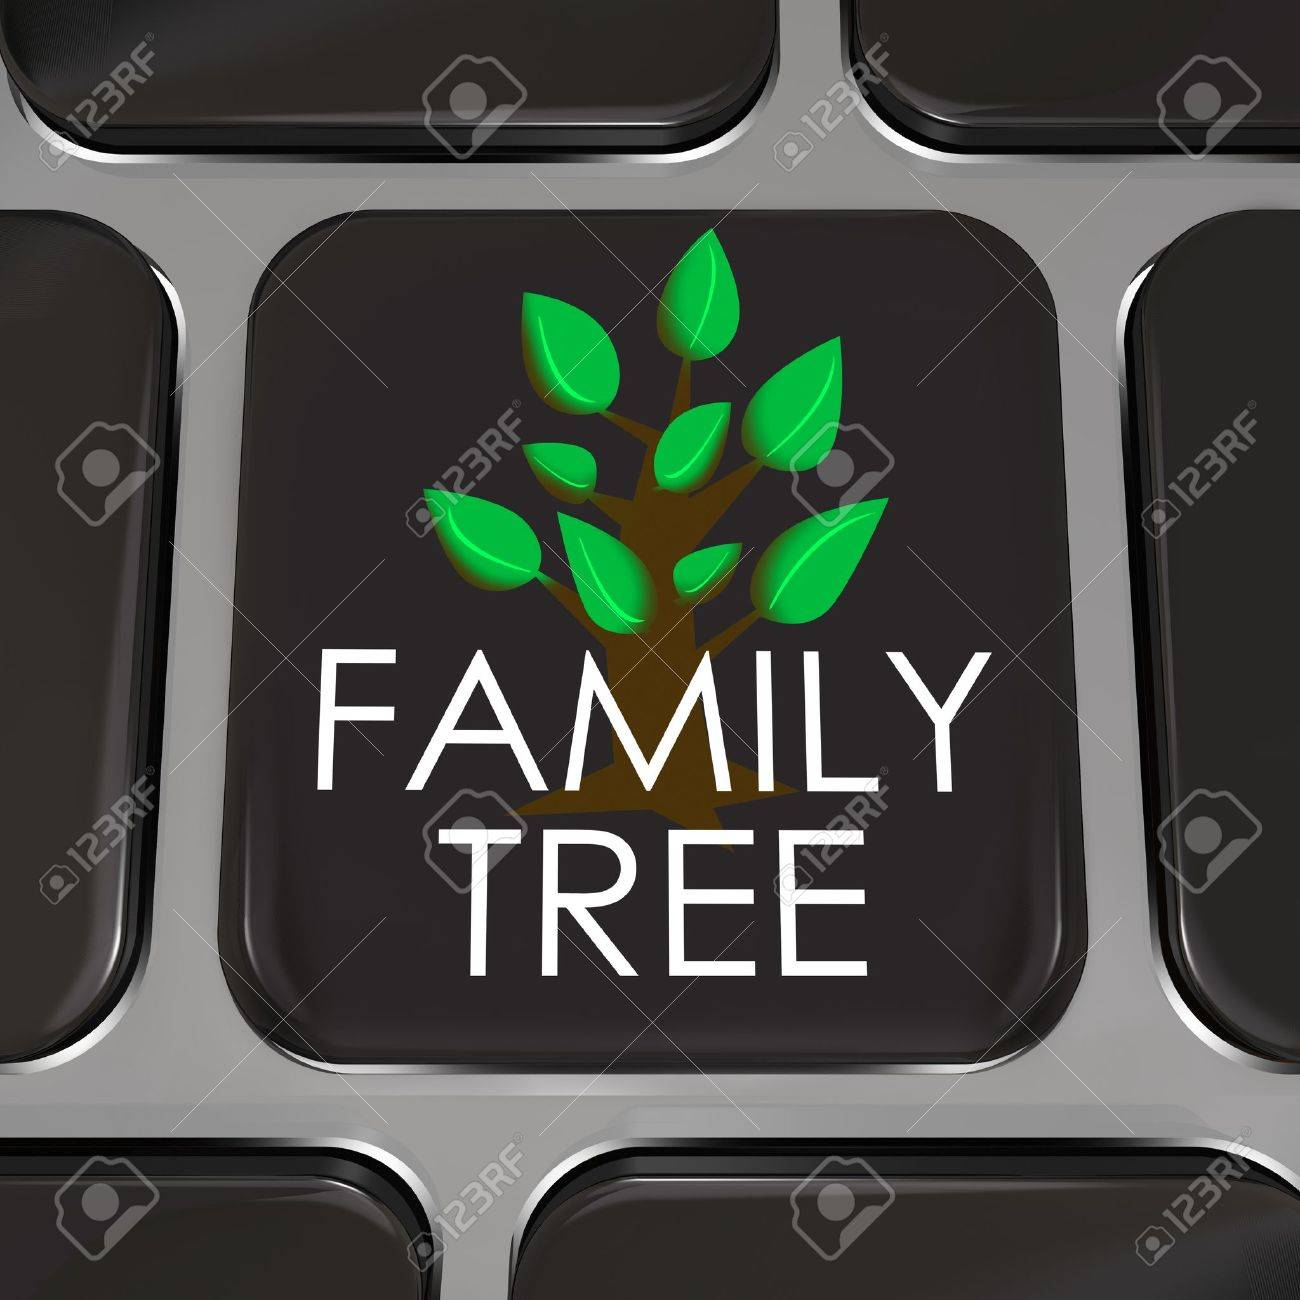 a computer keyboard key with the words family tree and picture